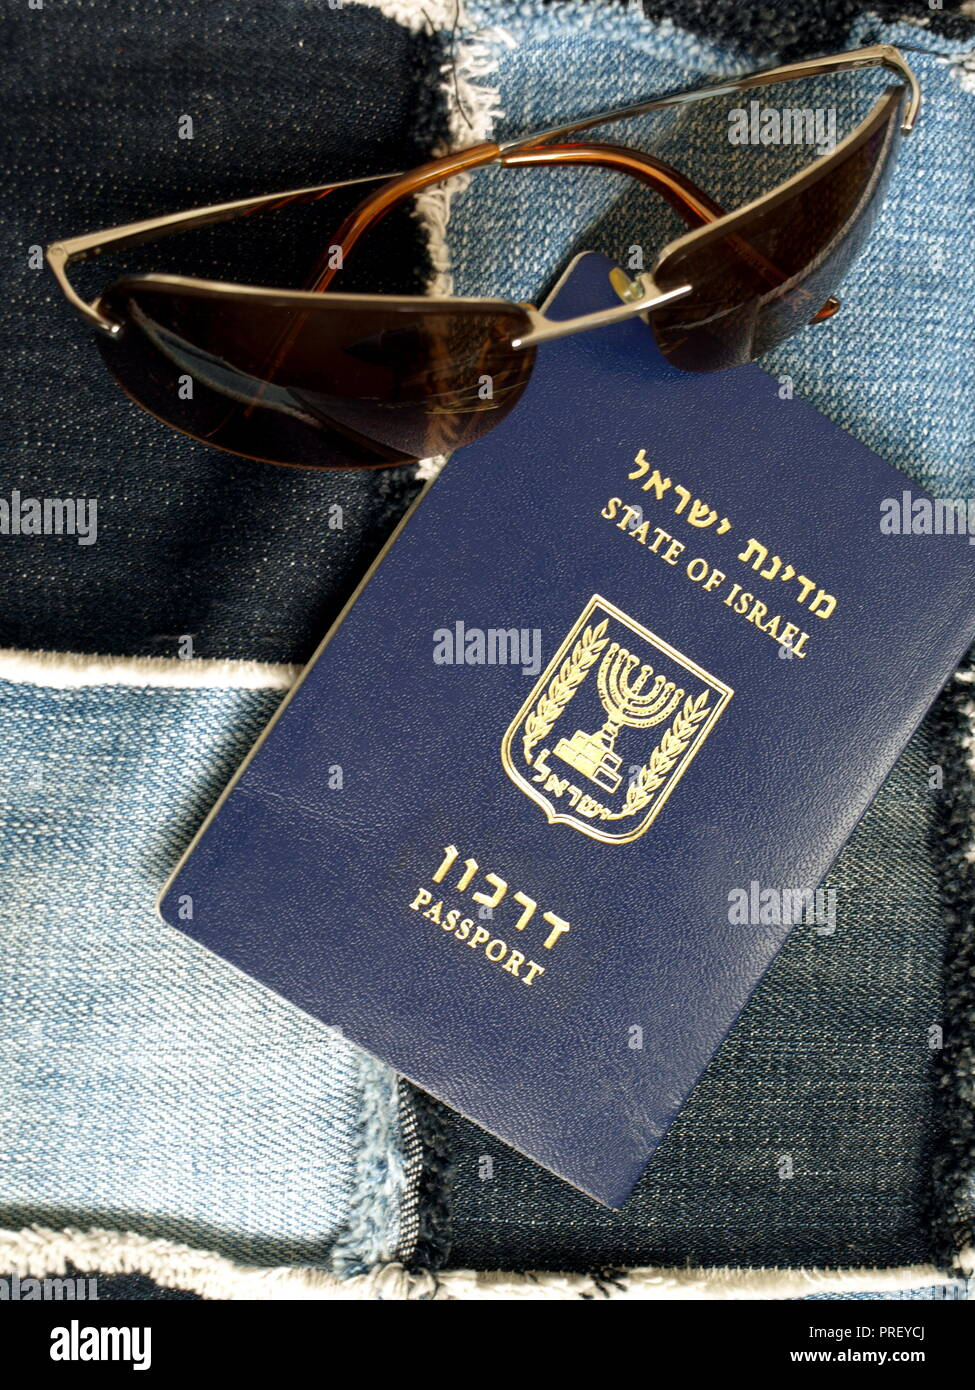 Israeli passport (translation: State of Israel. Passport) and glasses from the sun. Stock Photo